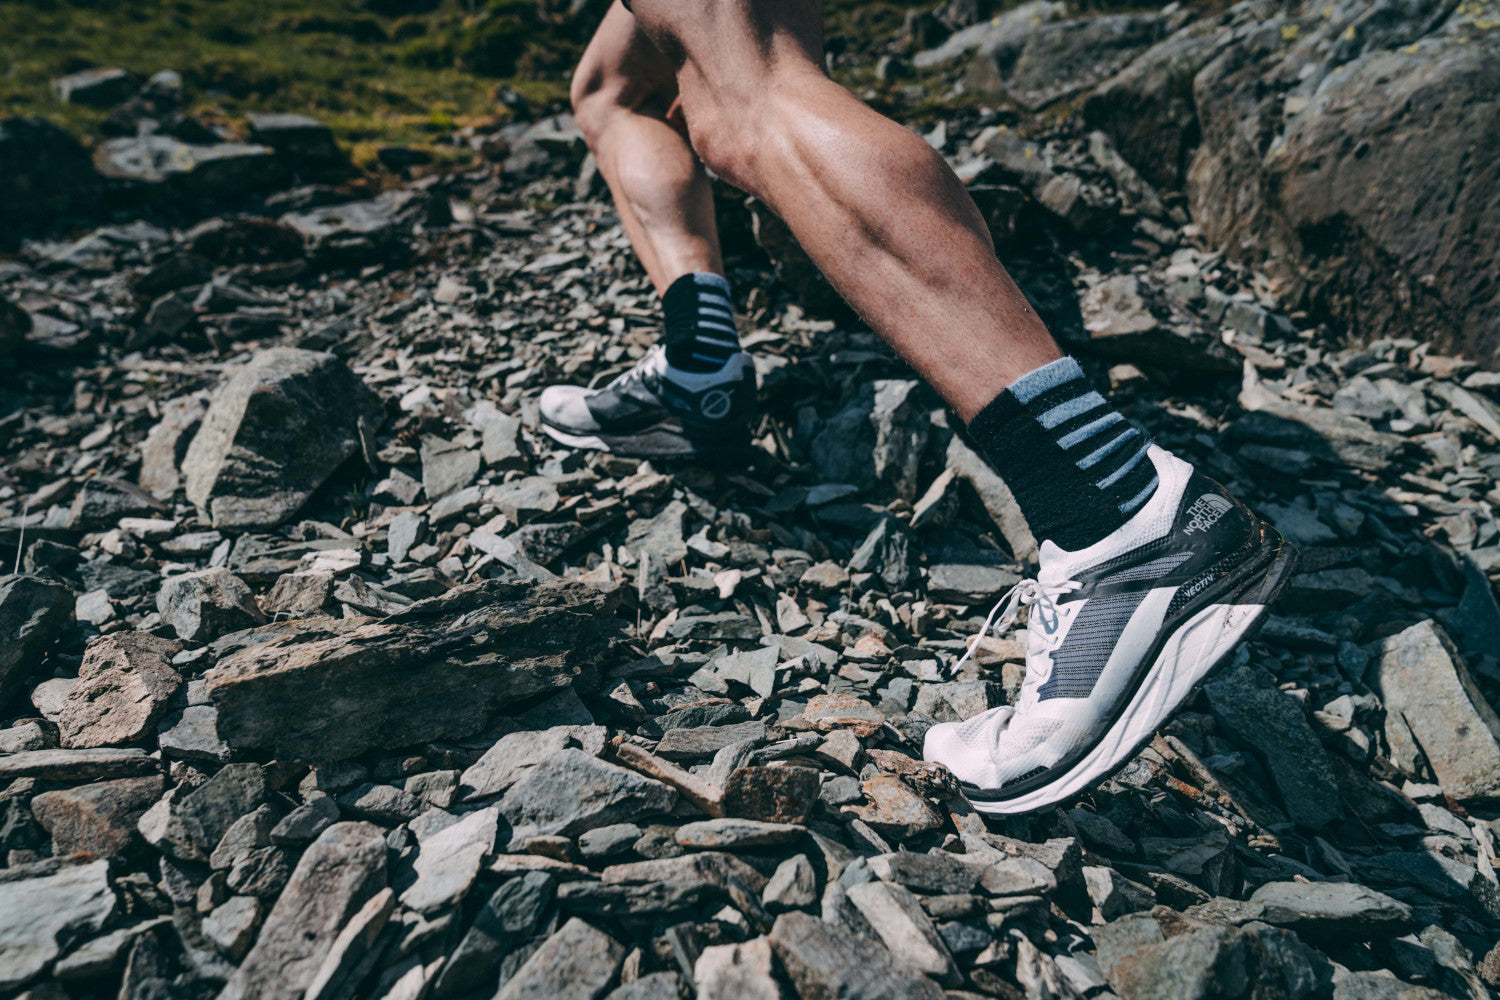 A close up of white trainers and legs of an uphill runner on loose slate terrain